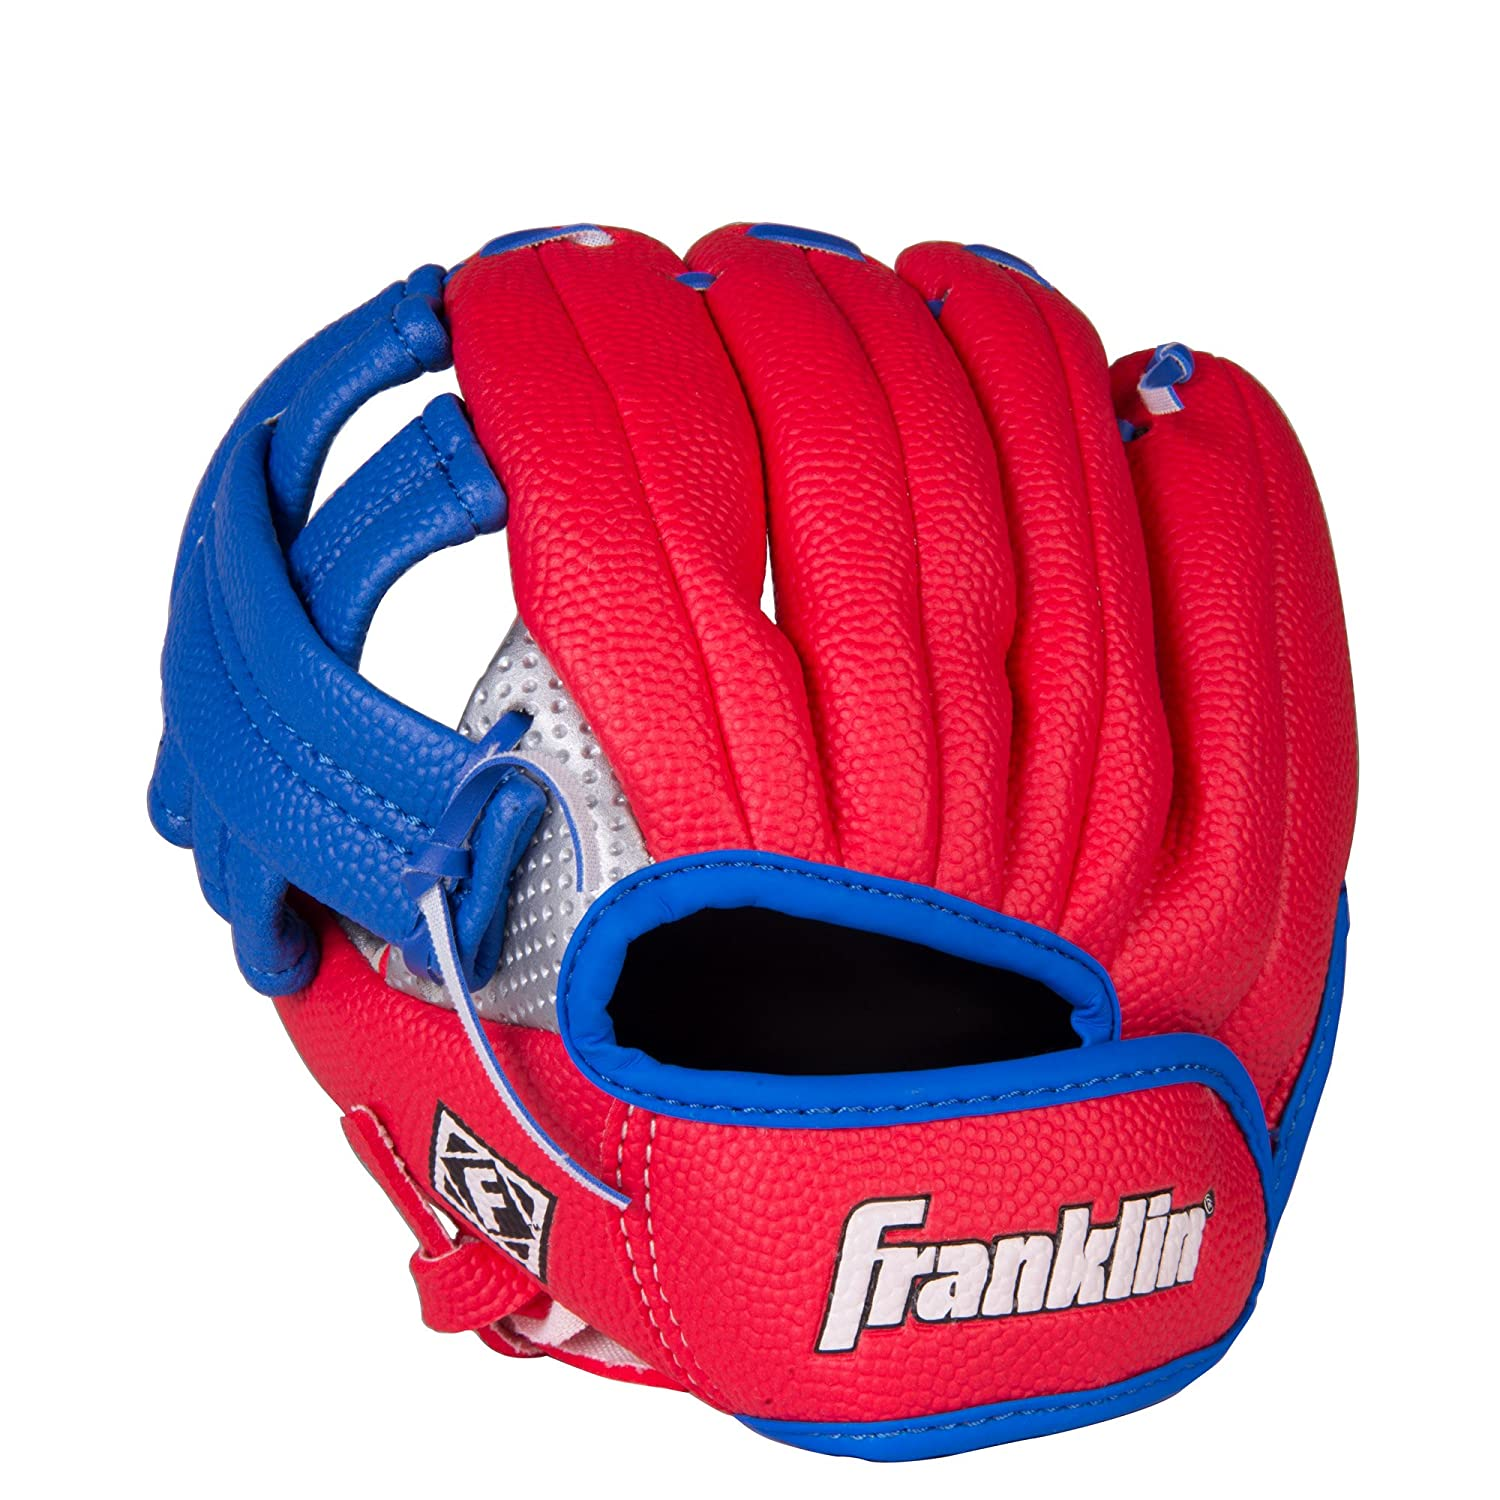 Top 5 Best Youth Baseball Gloves Reviews In 2018 Updated